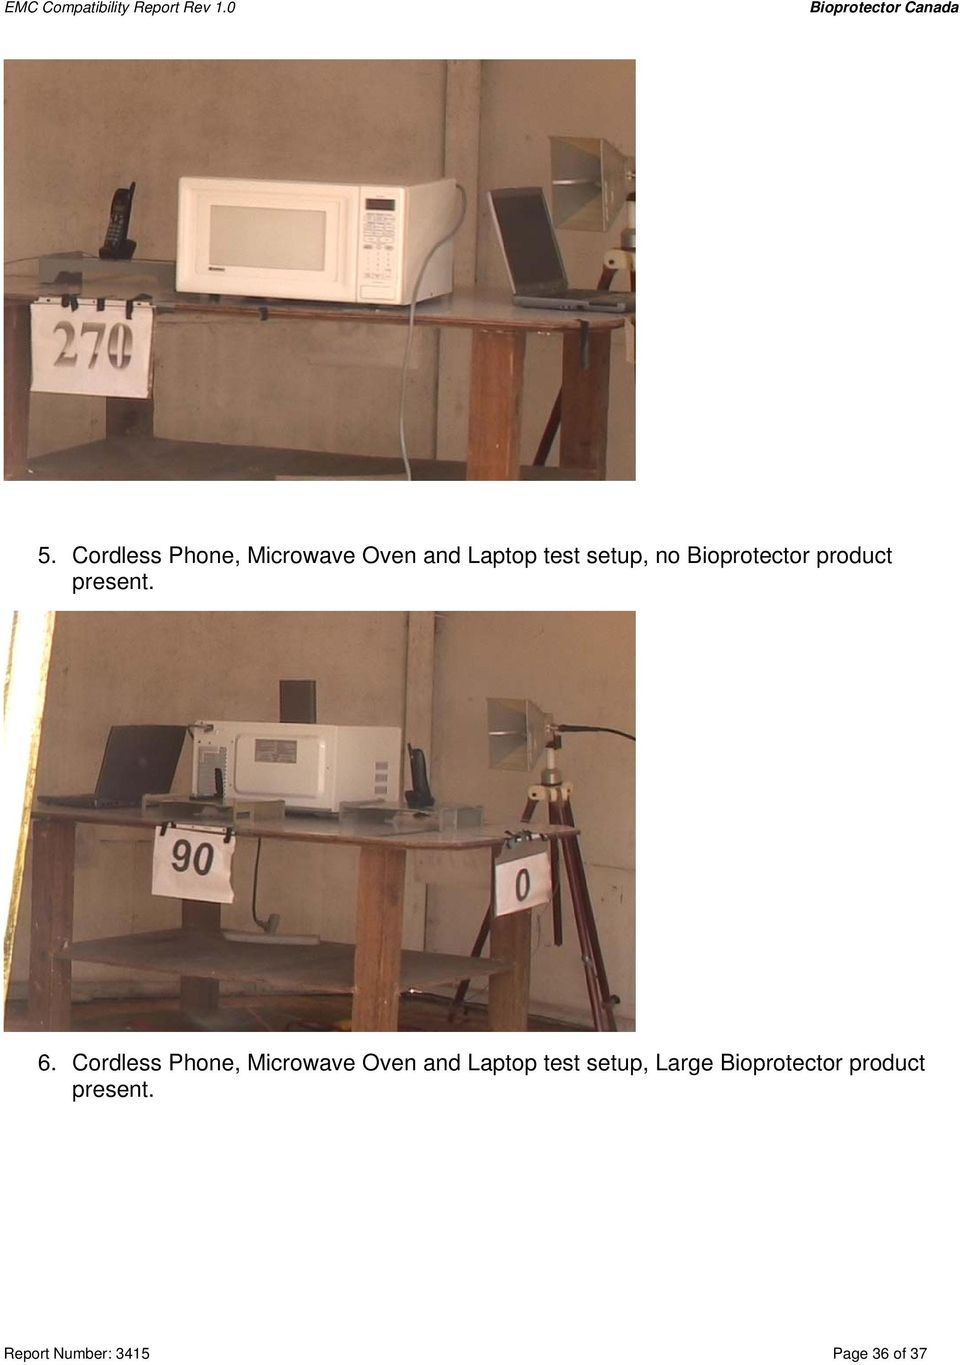 Cordless Phone, Microwave Oven and Laptop test setup,